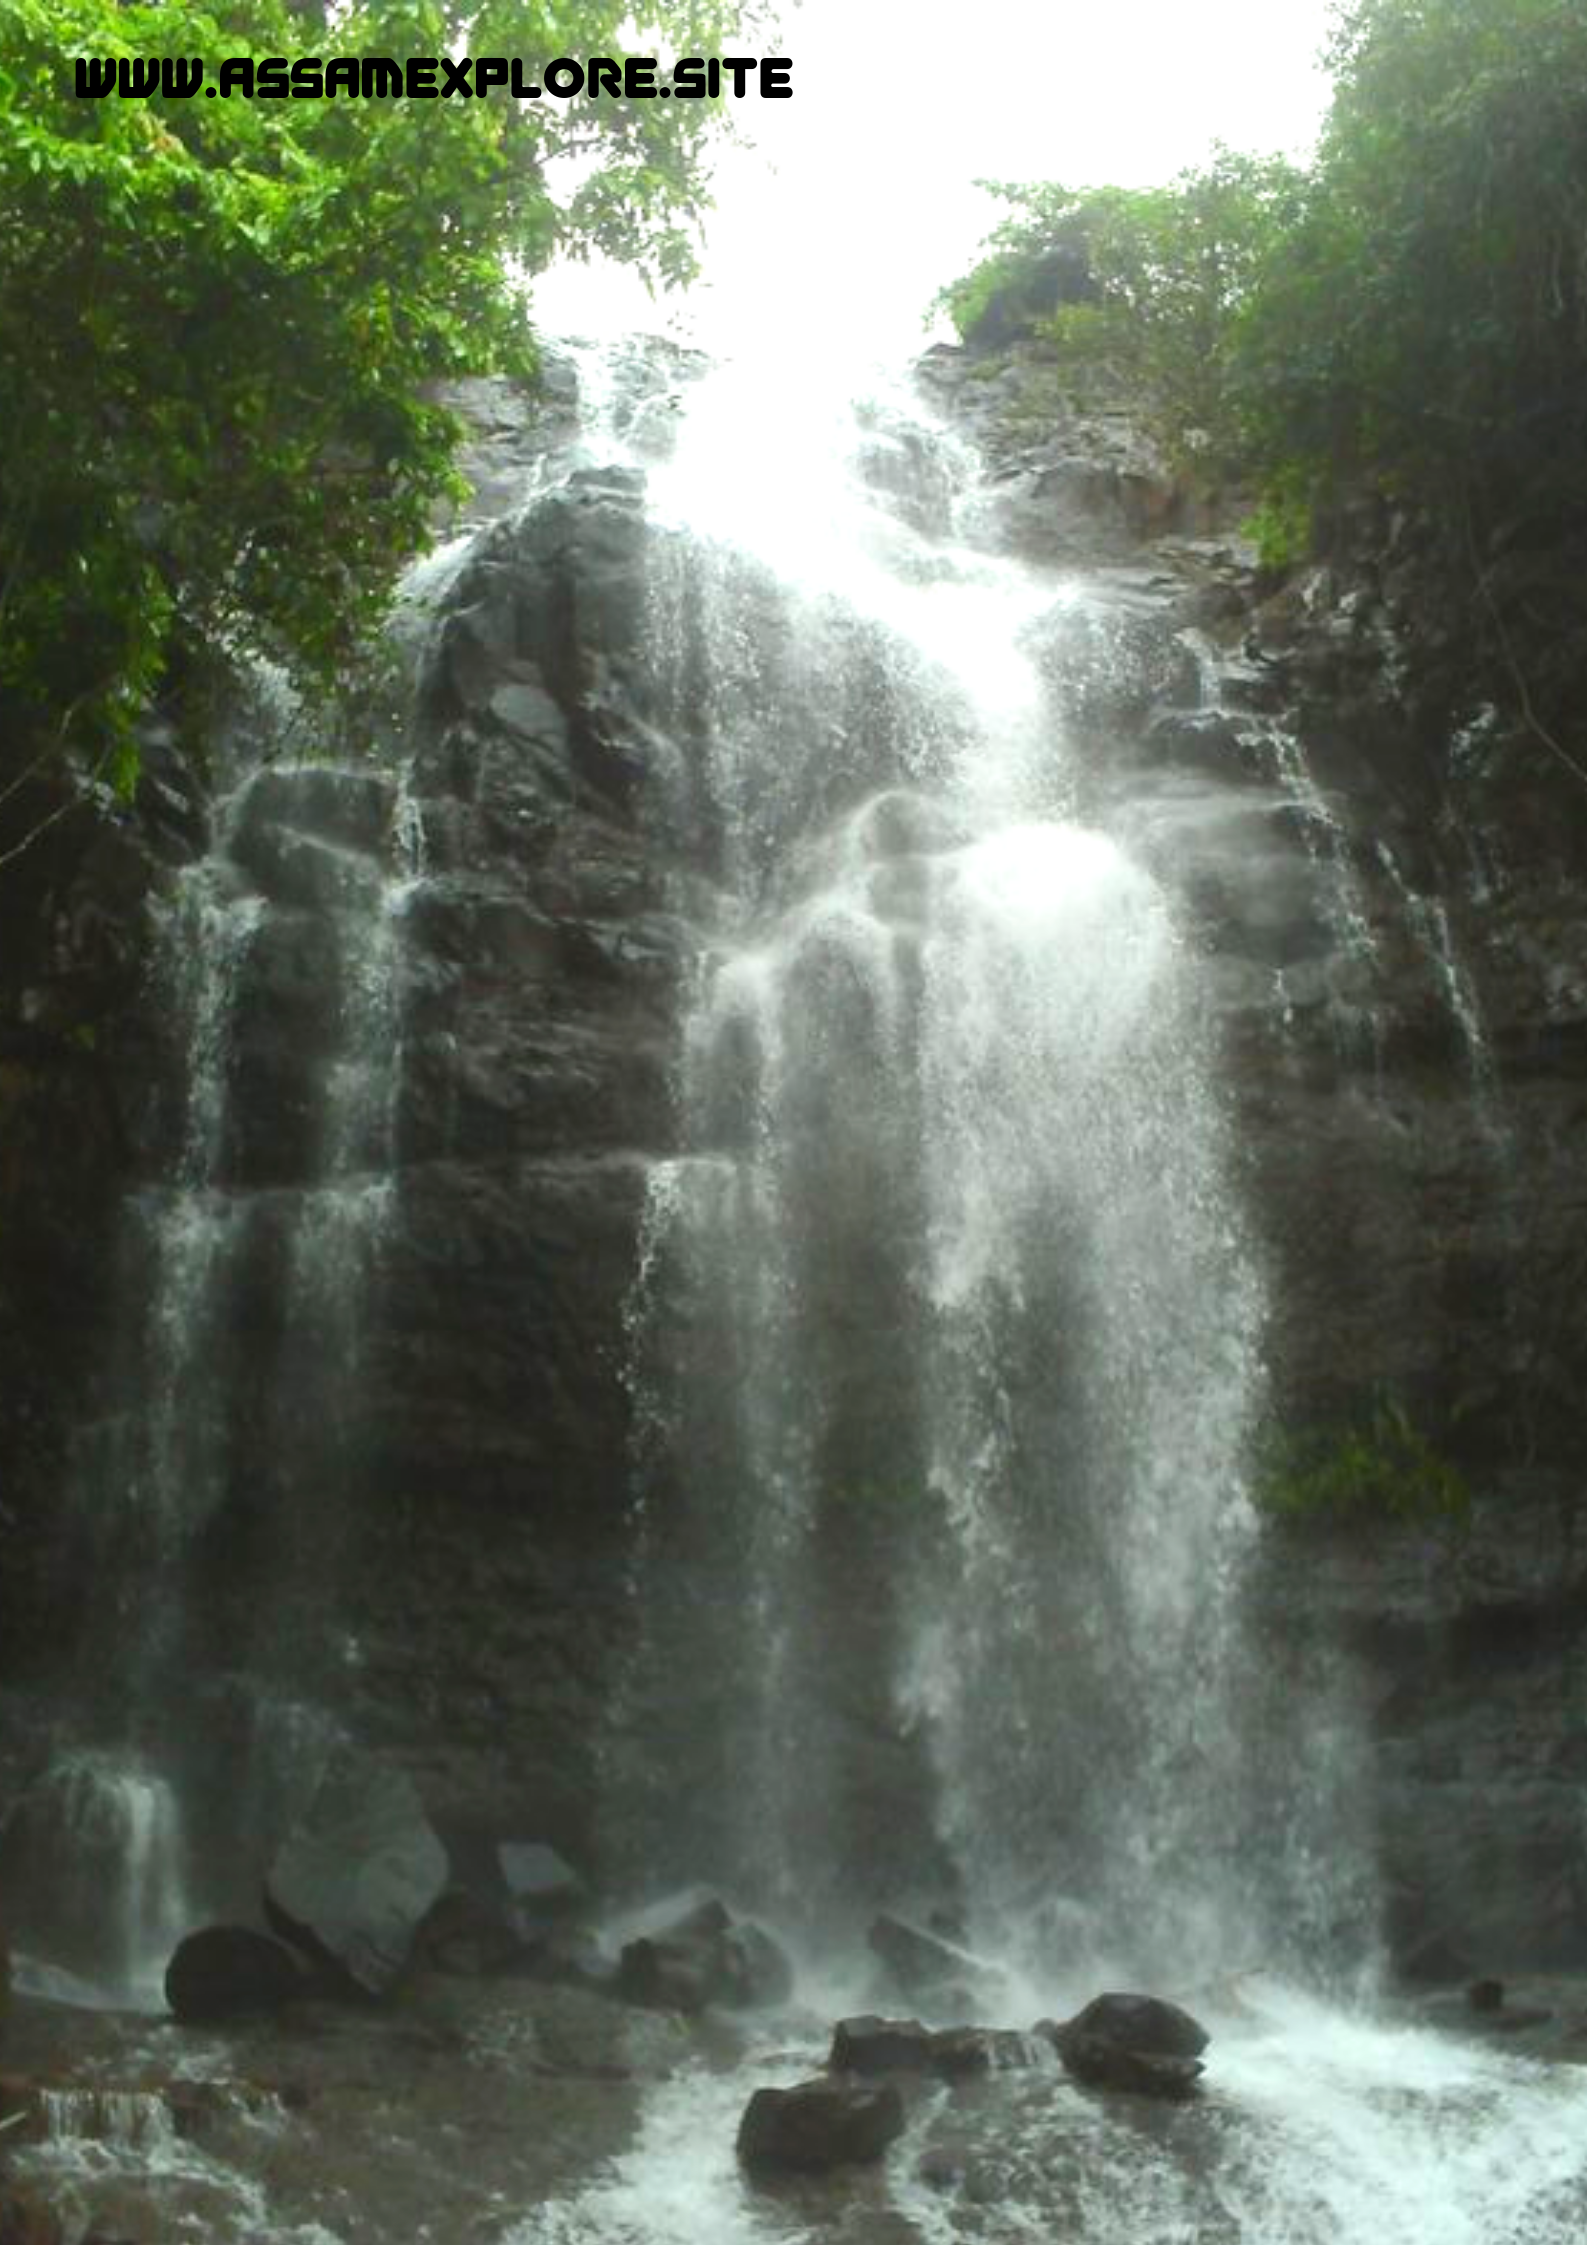 Kakochang Waterfall Bokakhat, Assam Waterfall